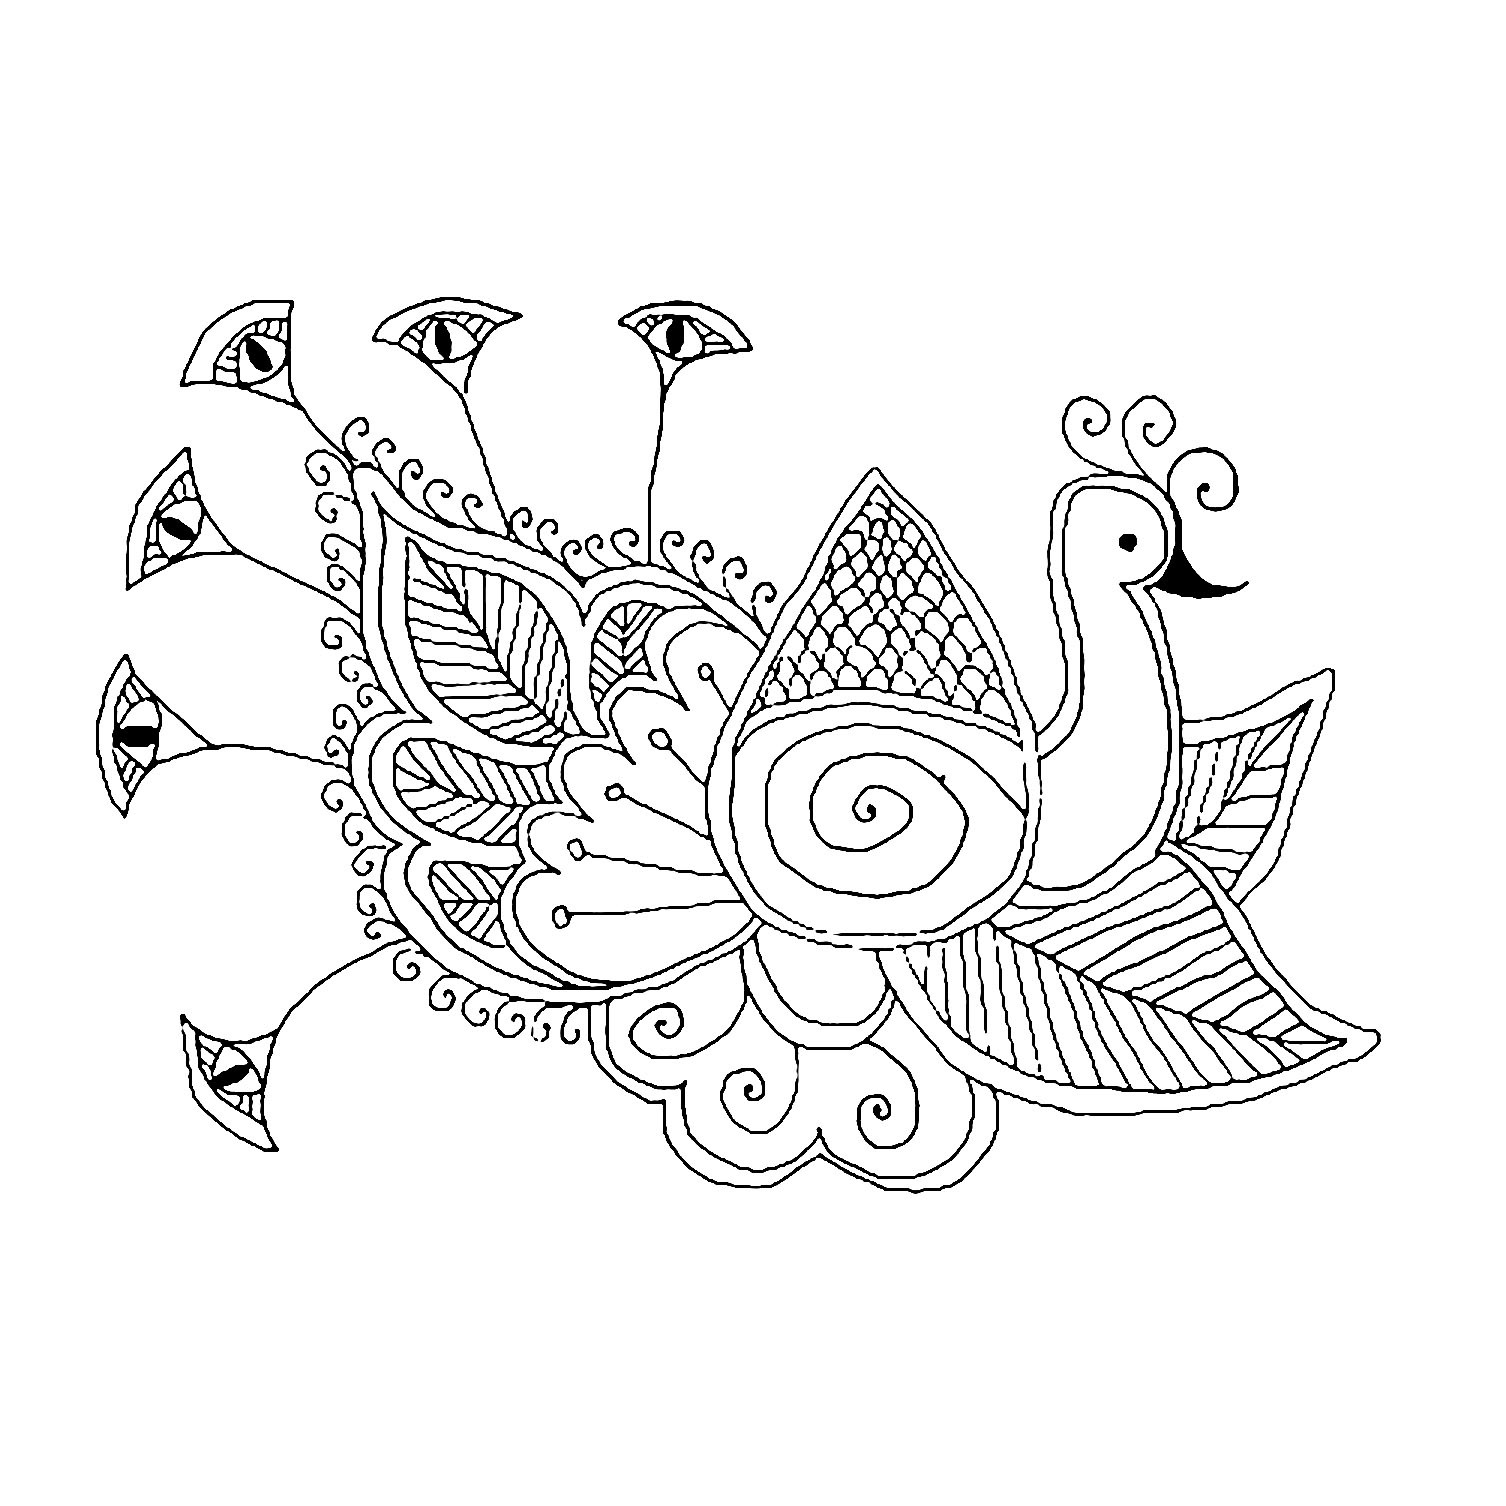 easy cute peacock coloring pages a cute peacock with beautiful eyes plumage coloring page coloring easy peacock cute pages